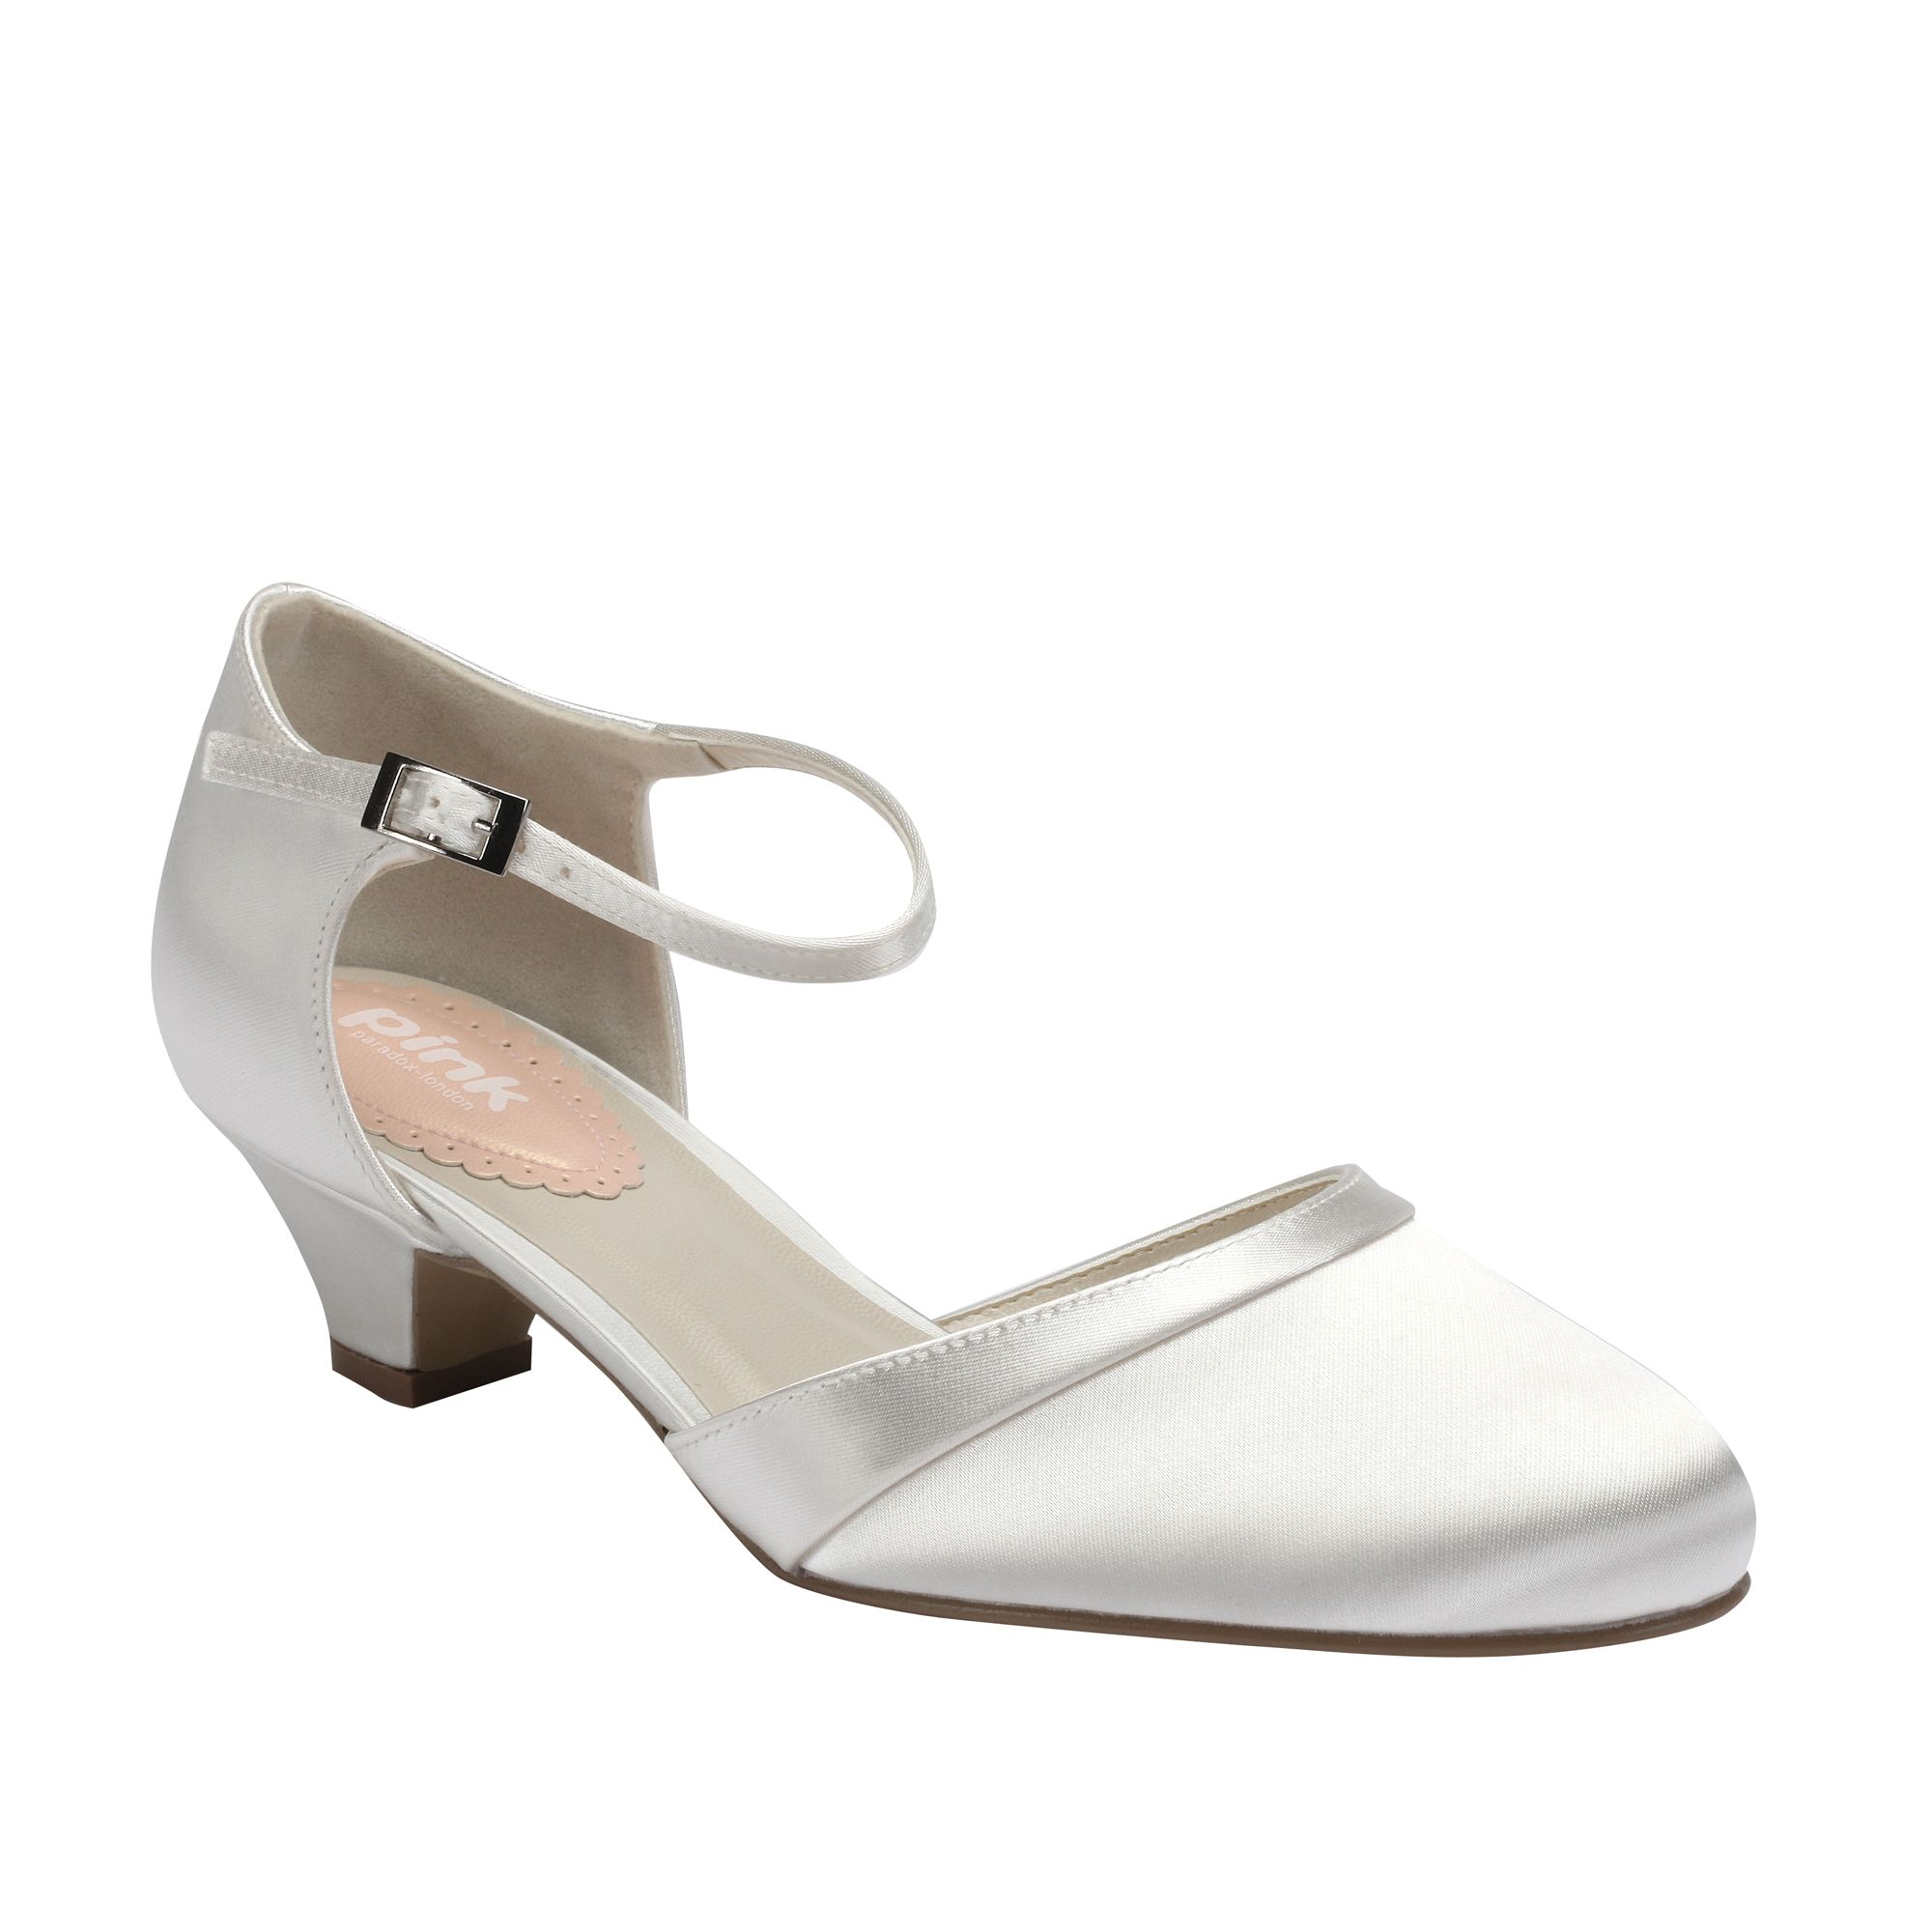 Paradox London Pink Paisley low heel round toe court shoes, Ivory